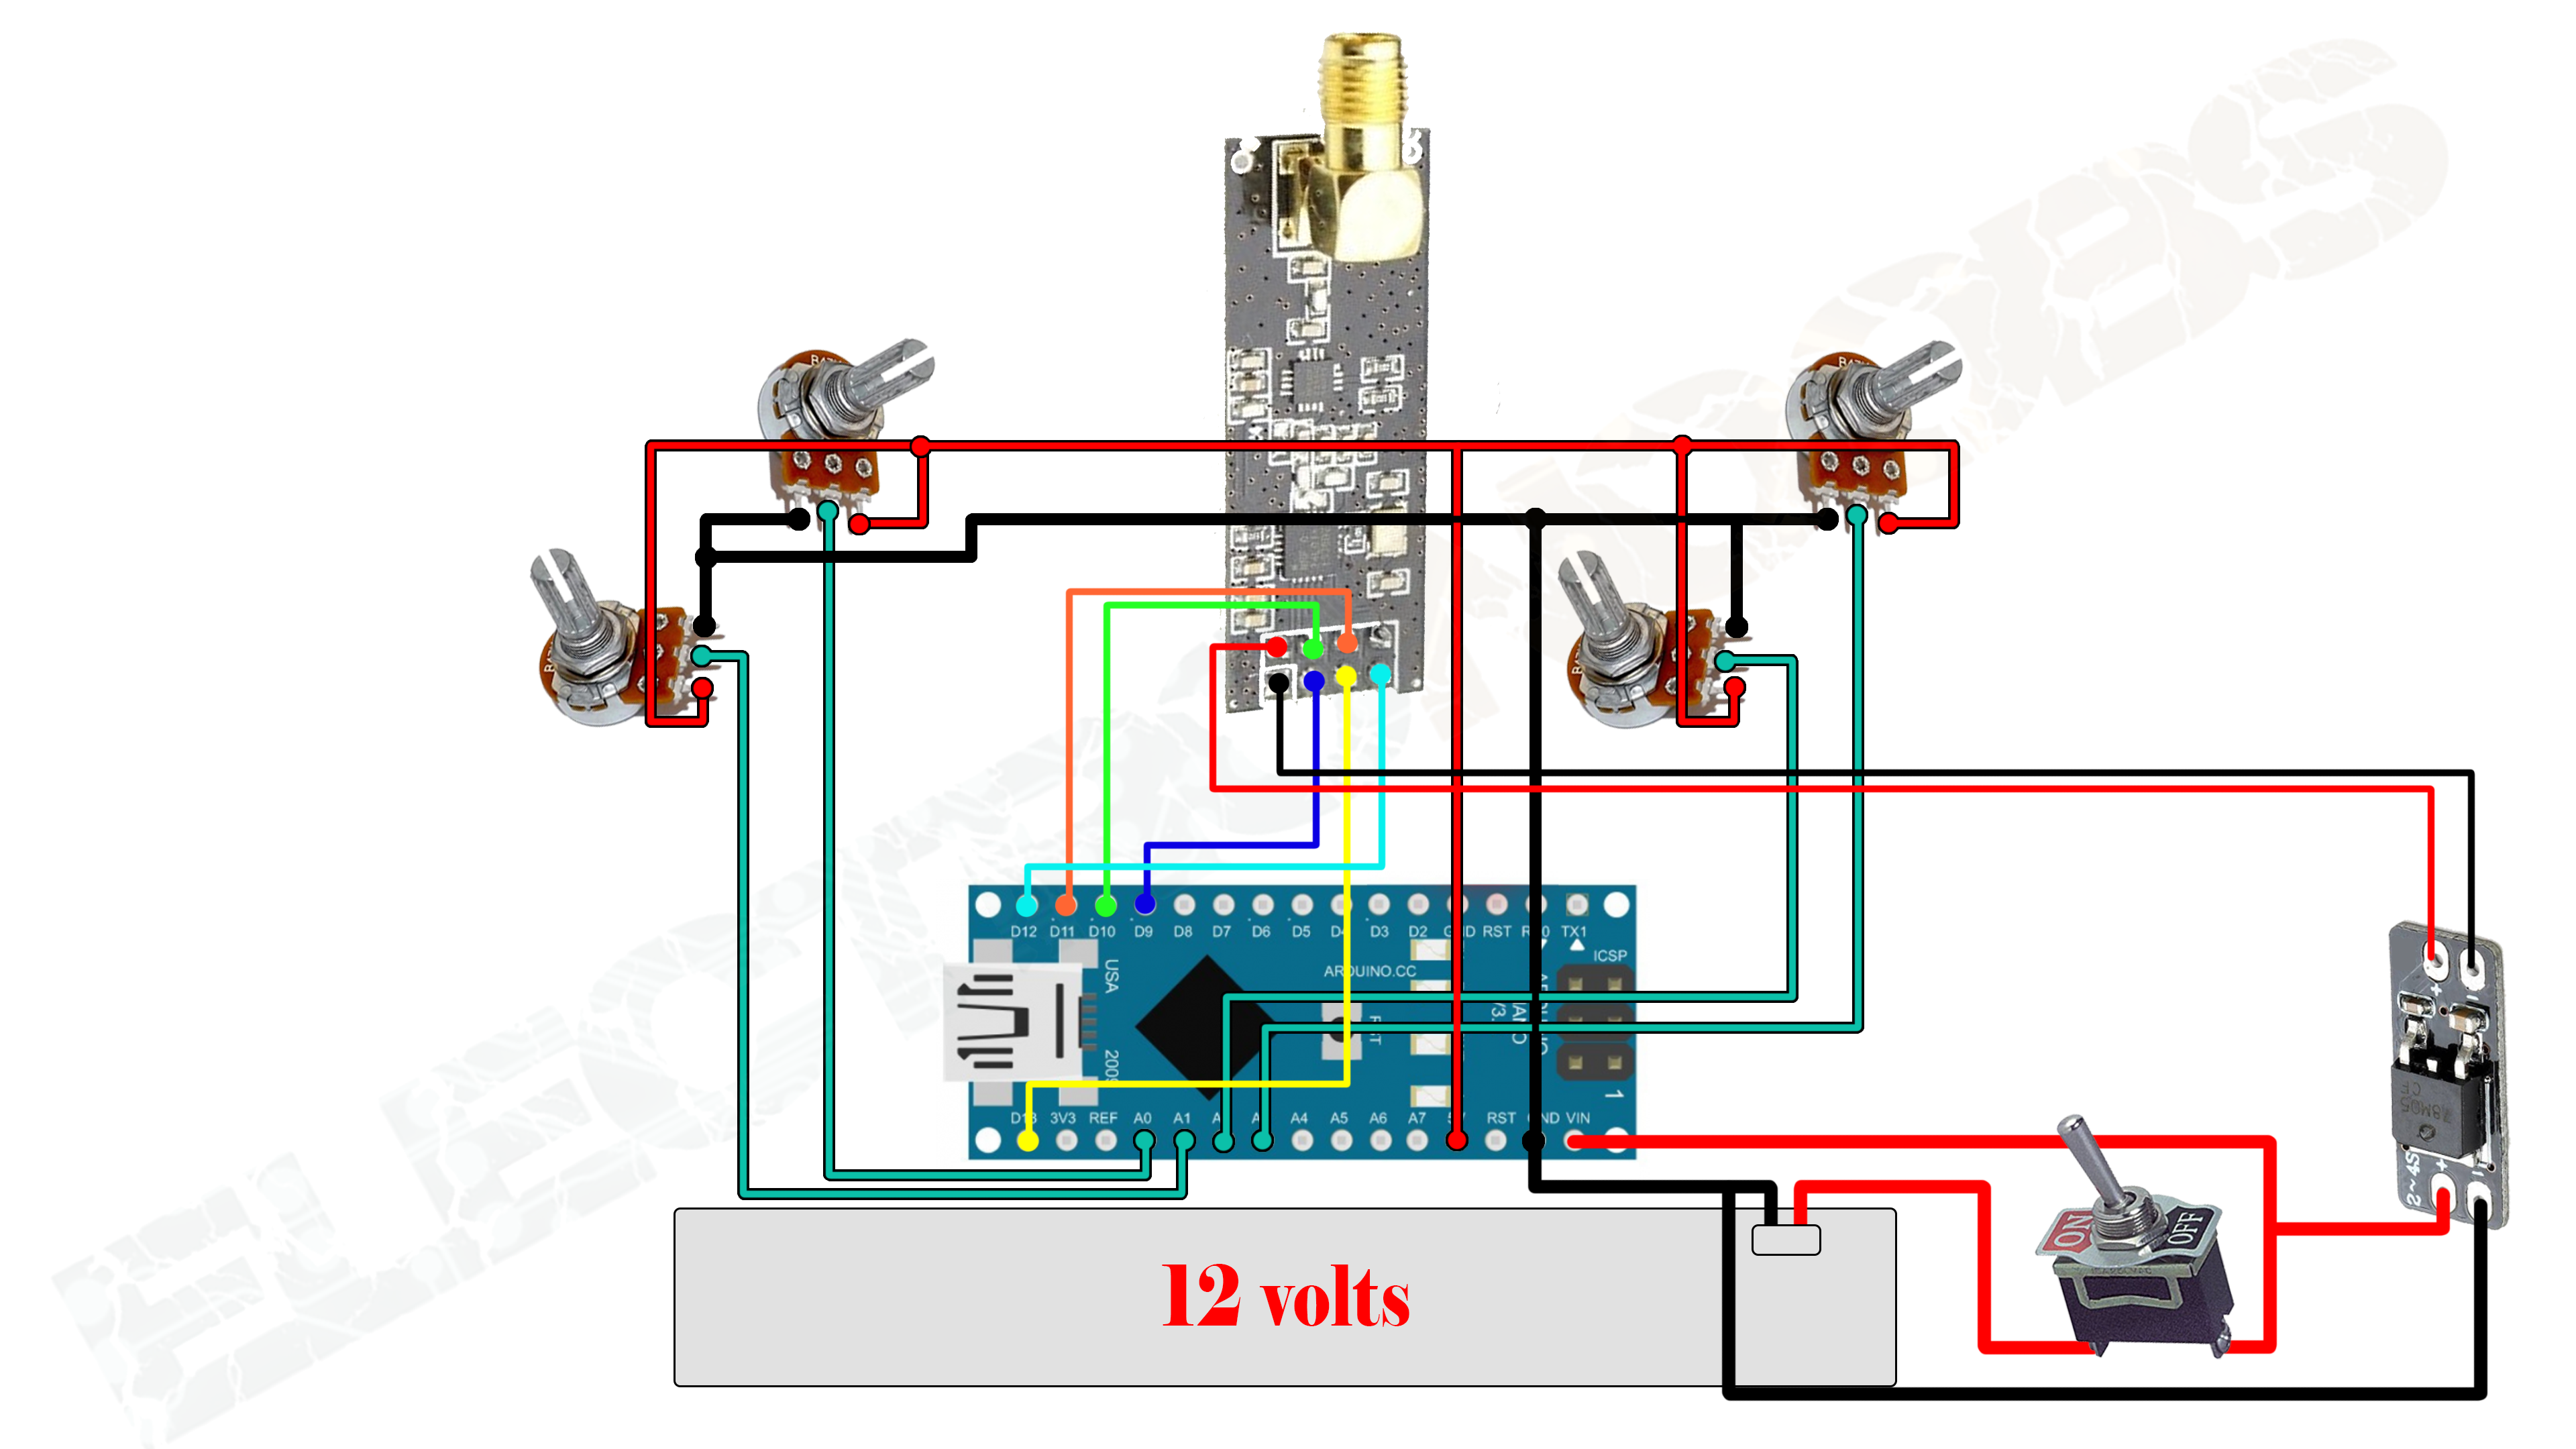 Nrf24 Radio Controller Arduino Transmitter Circuit Diagram Of Zigbee Transceiver Potentiometer For Rc